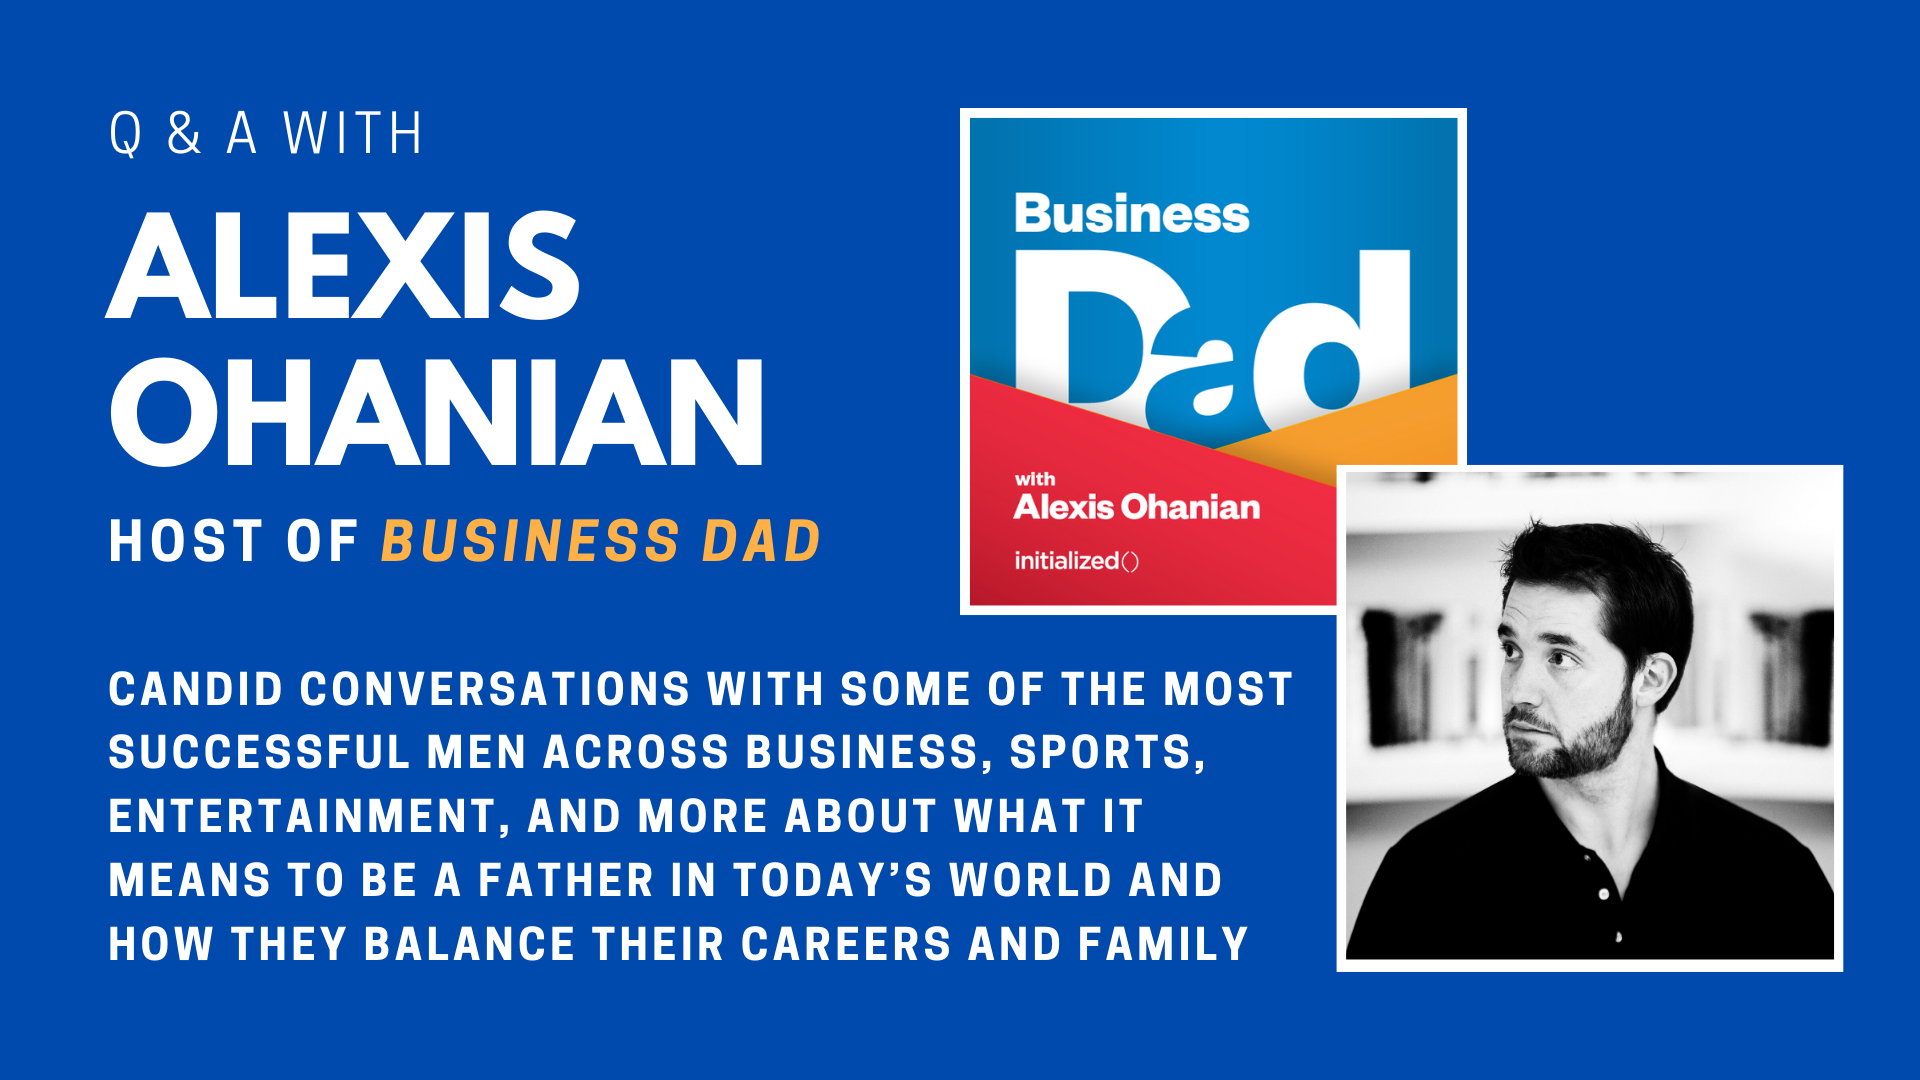 Q & A with Alexis Ohanian, co-founder of Reddit and host of <em></noscript>Business Dad</em>